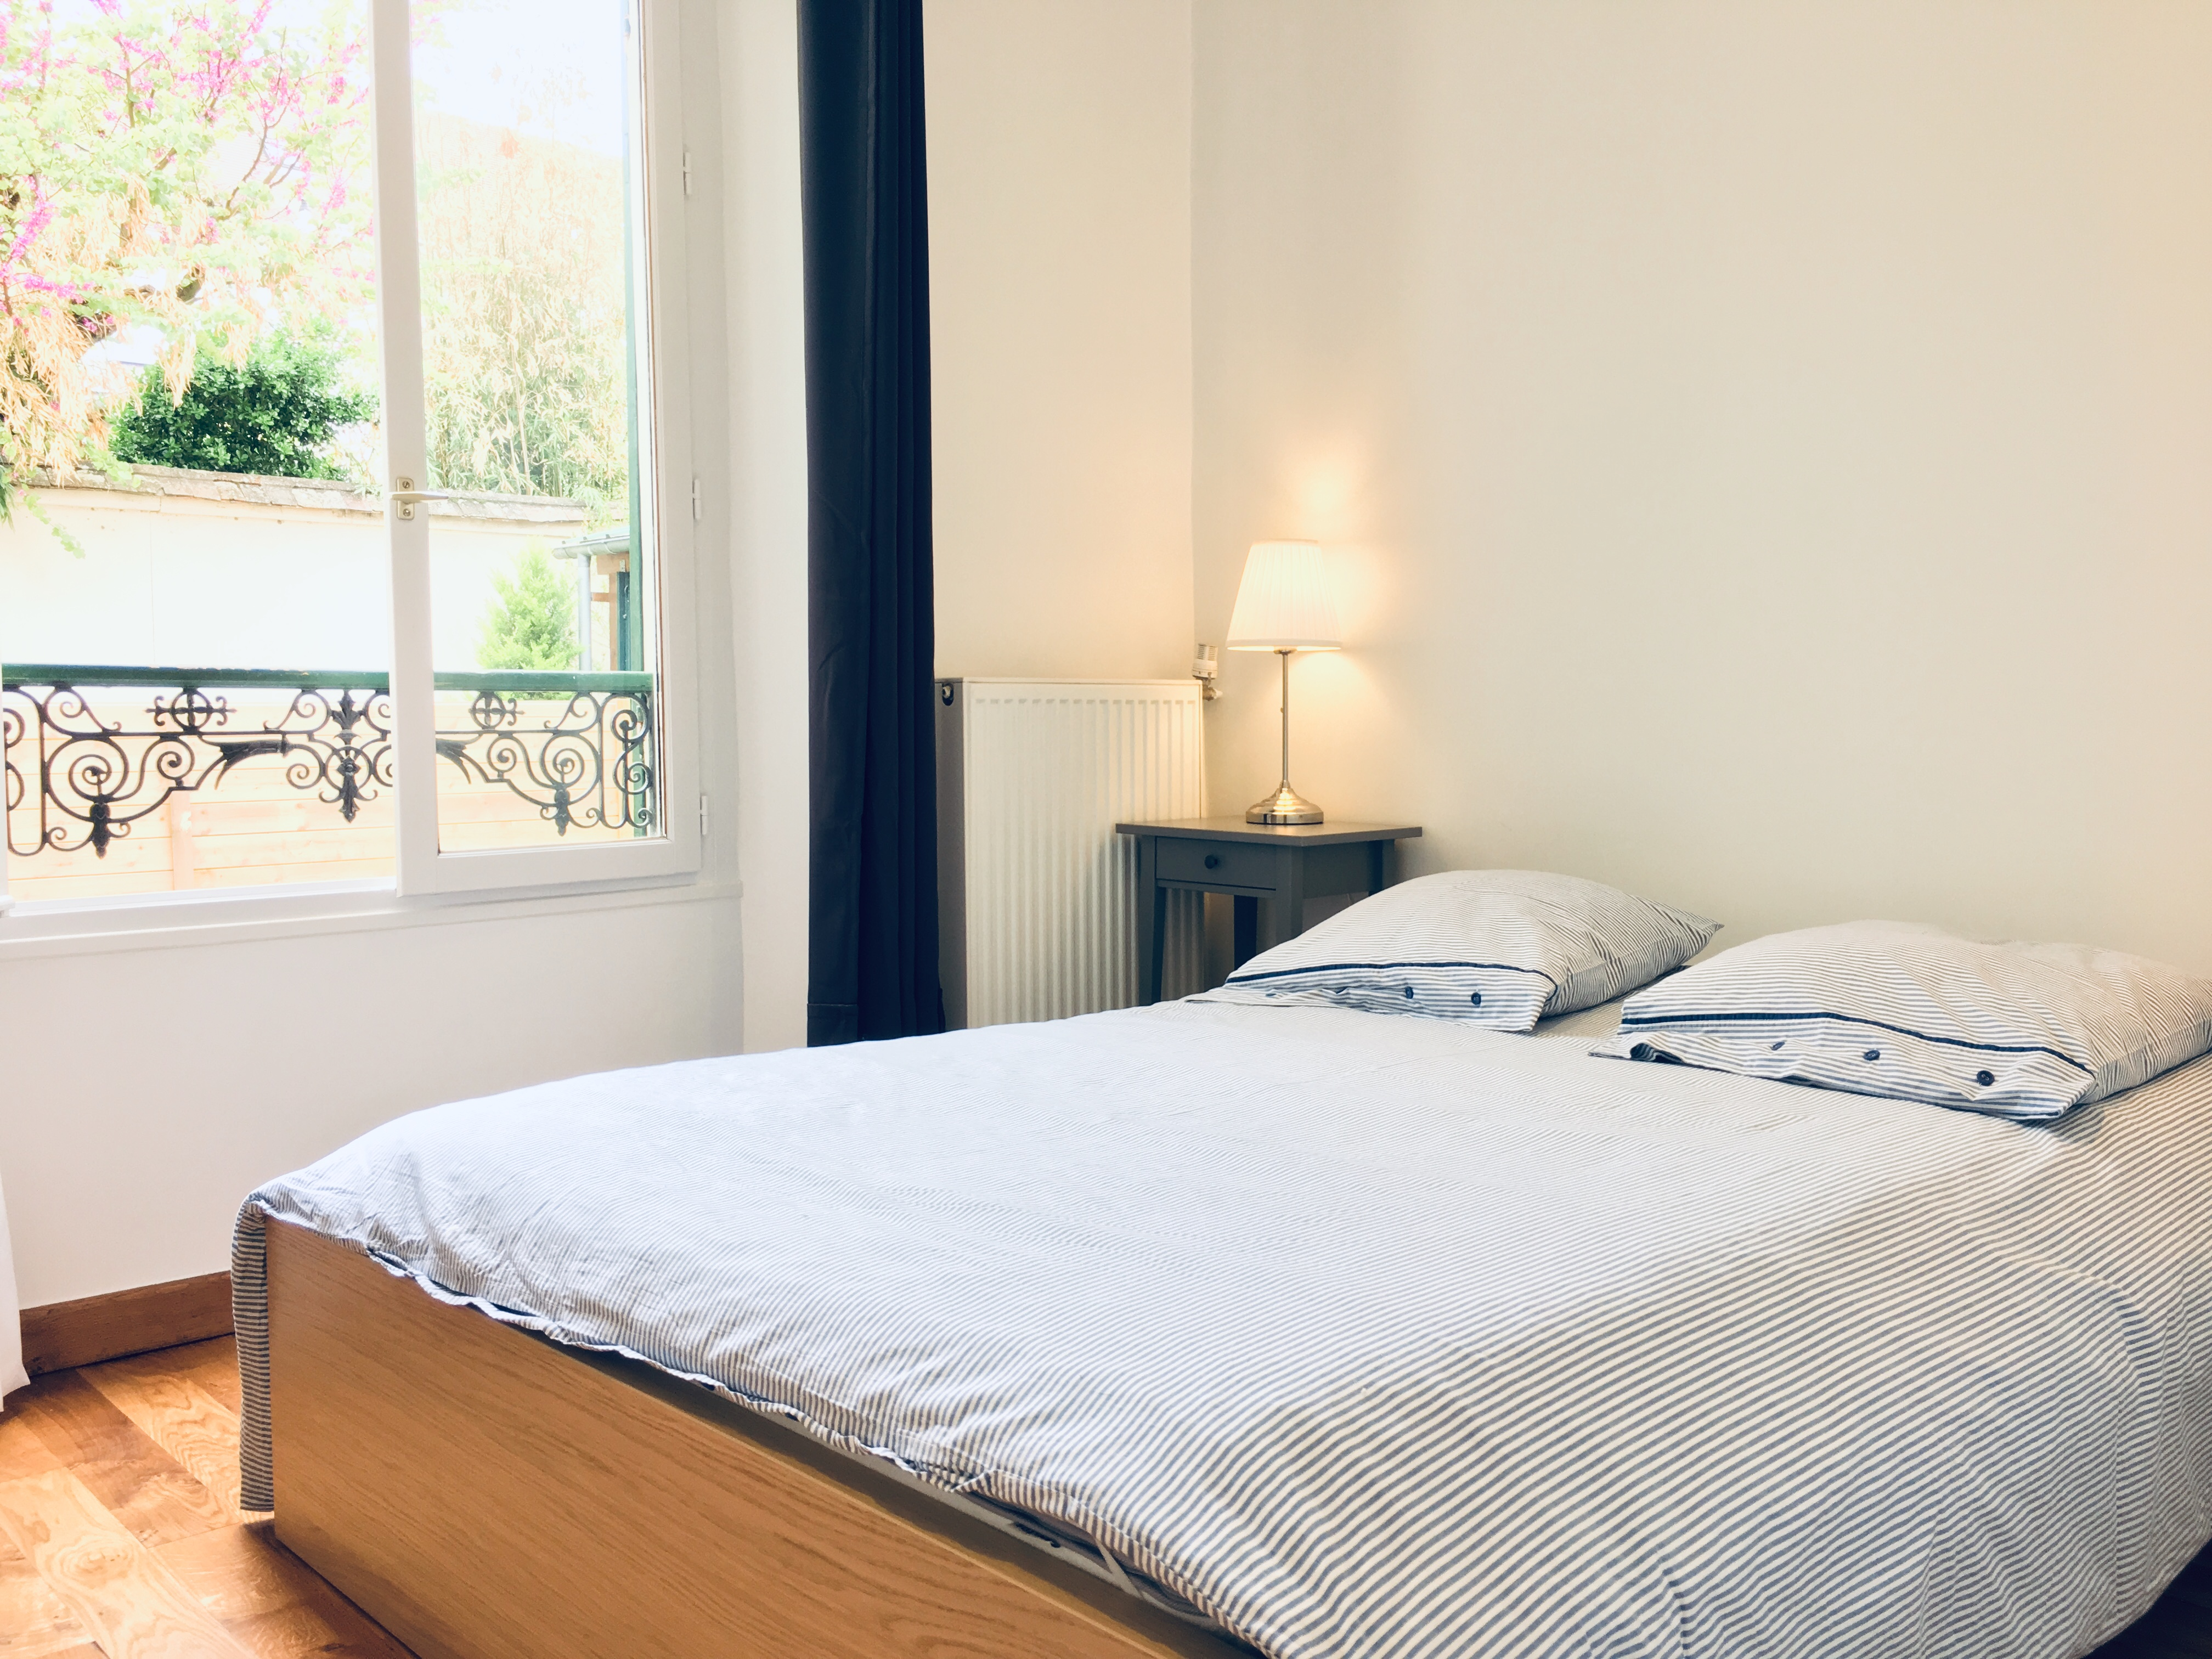 Insead housing premium flat for rent Fontainebleau